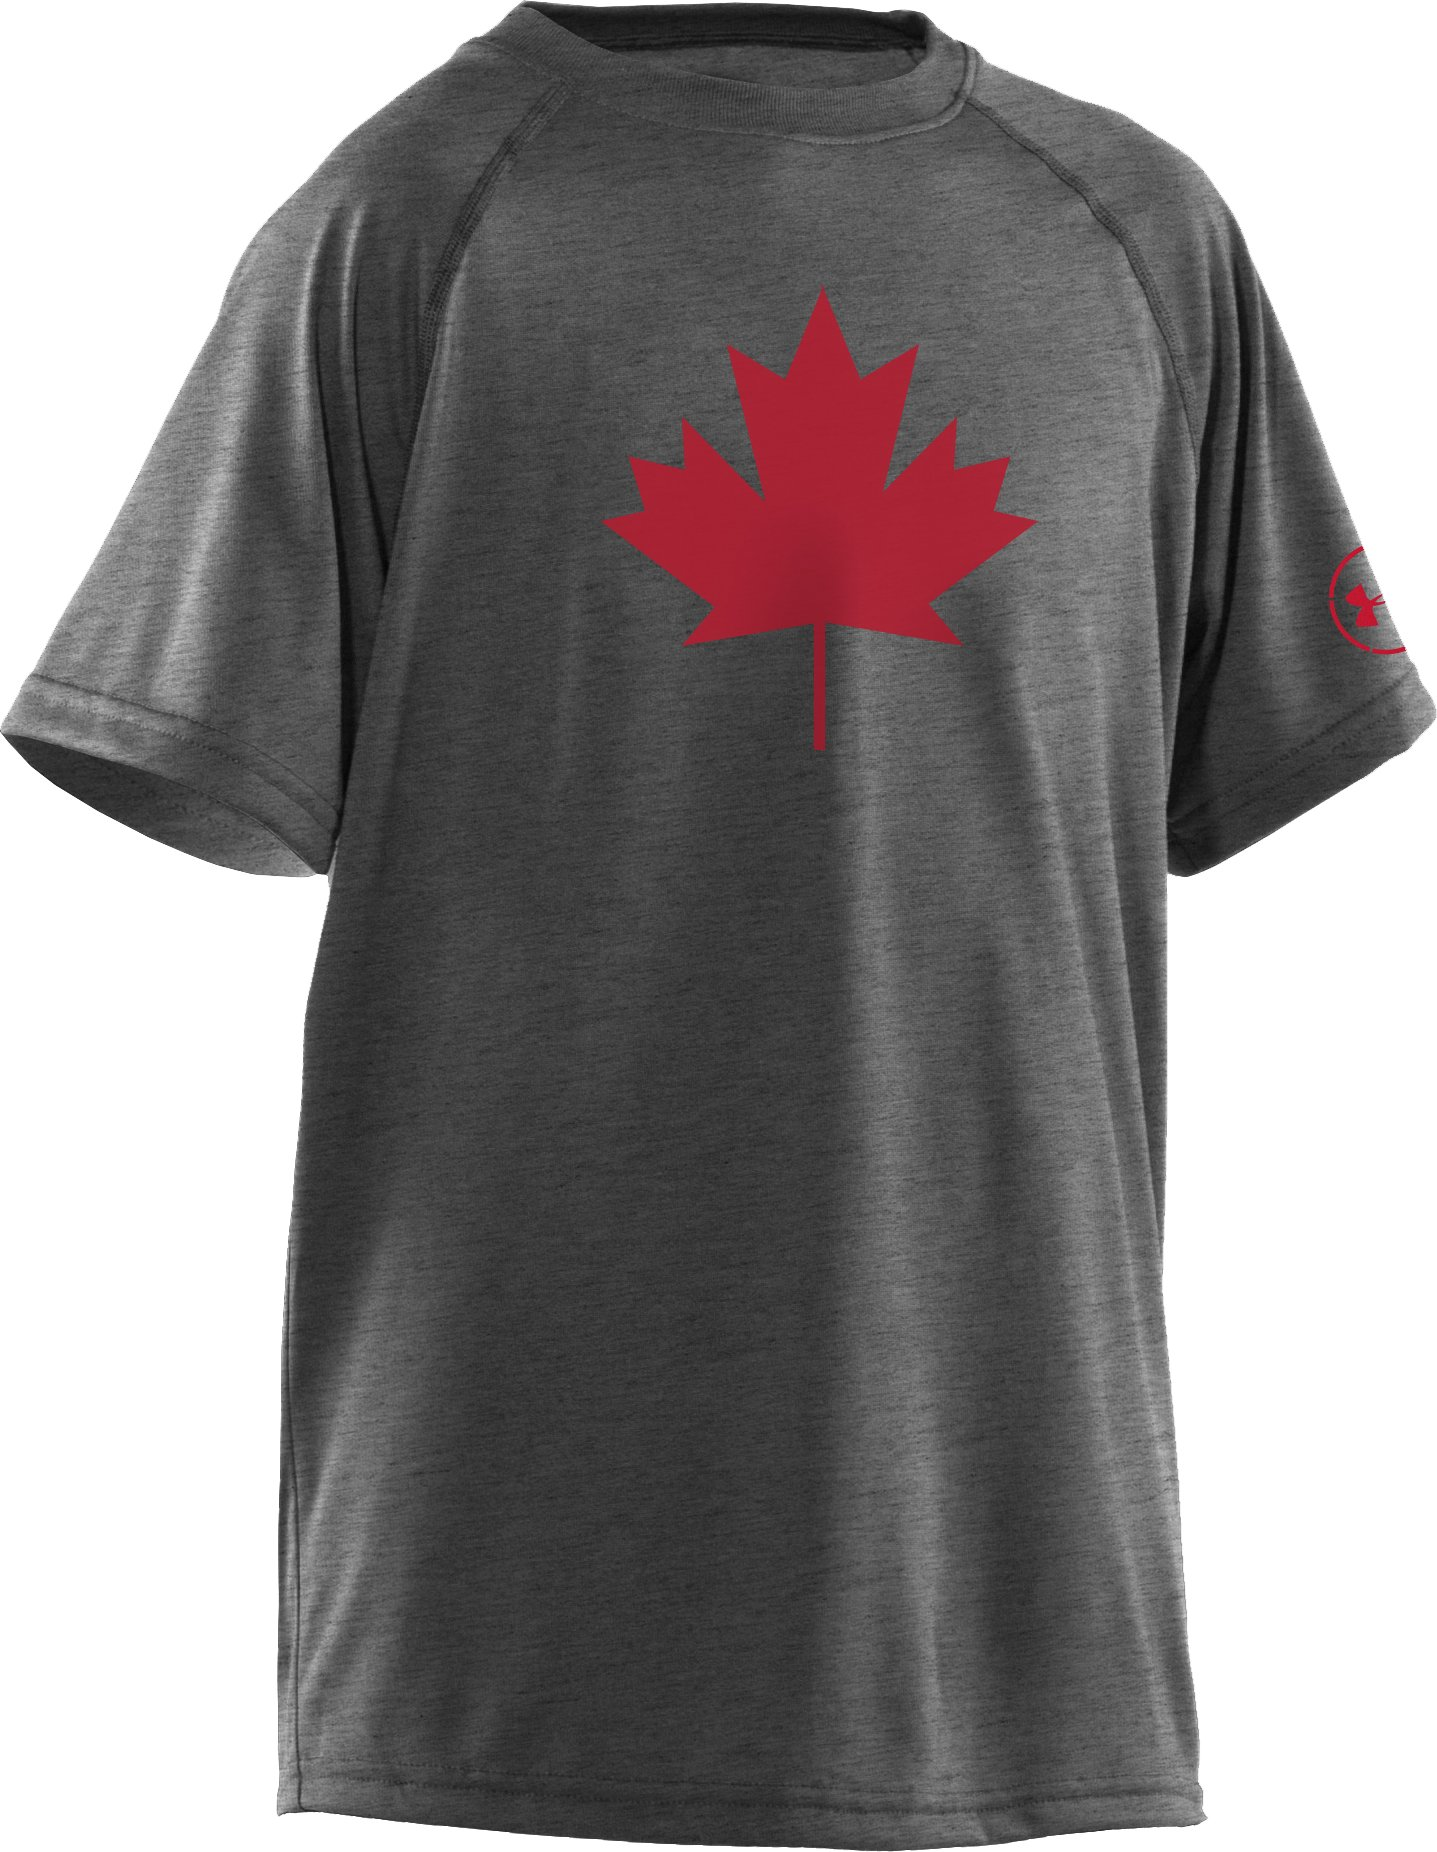 Boys' Canada Leaf T-Shirt, Carbon Heather, zoomed image